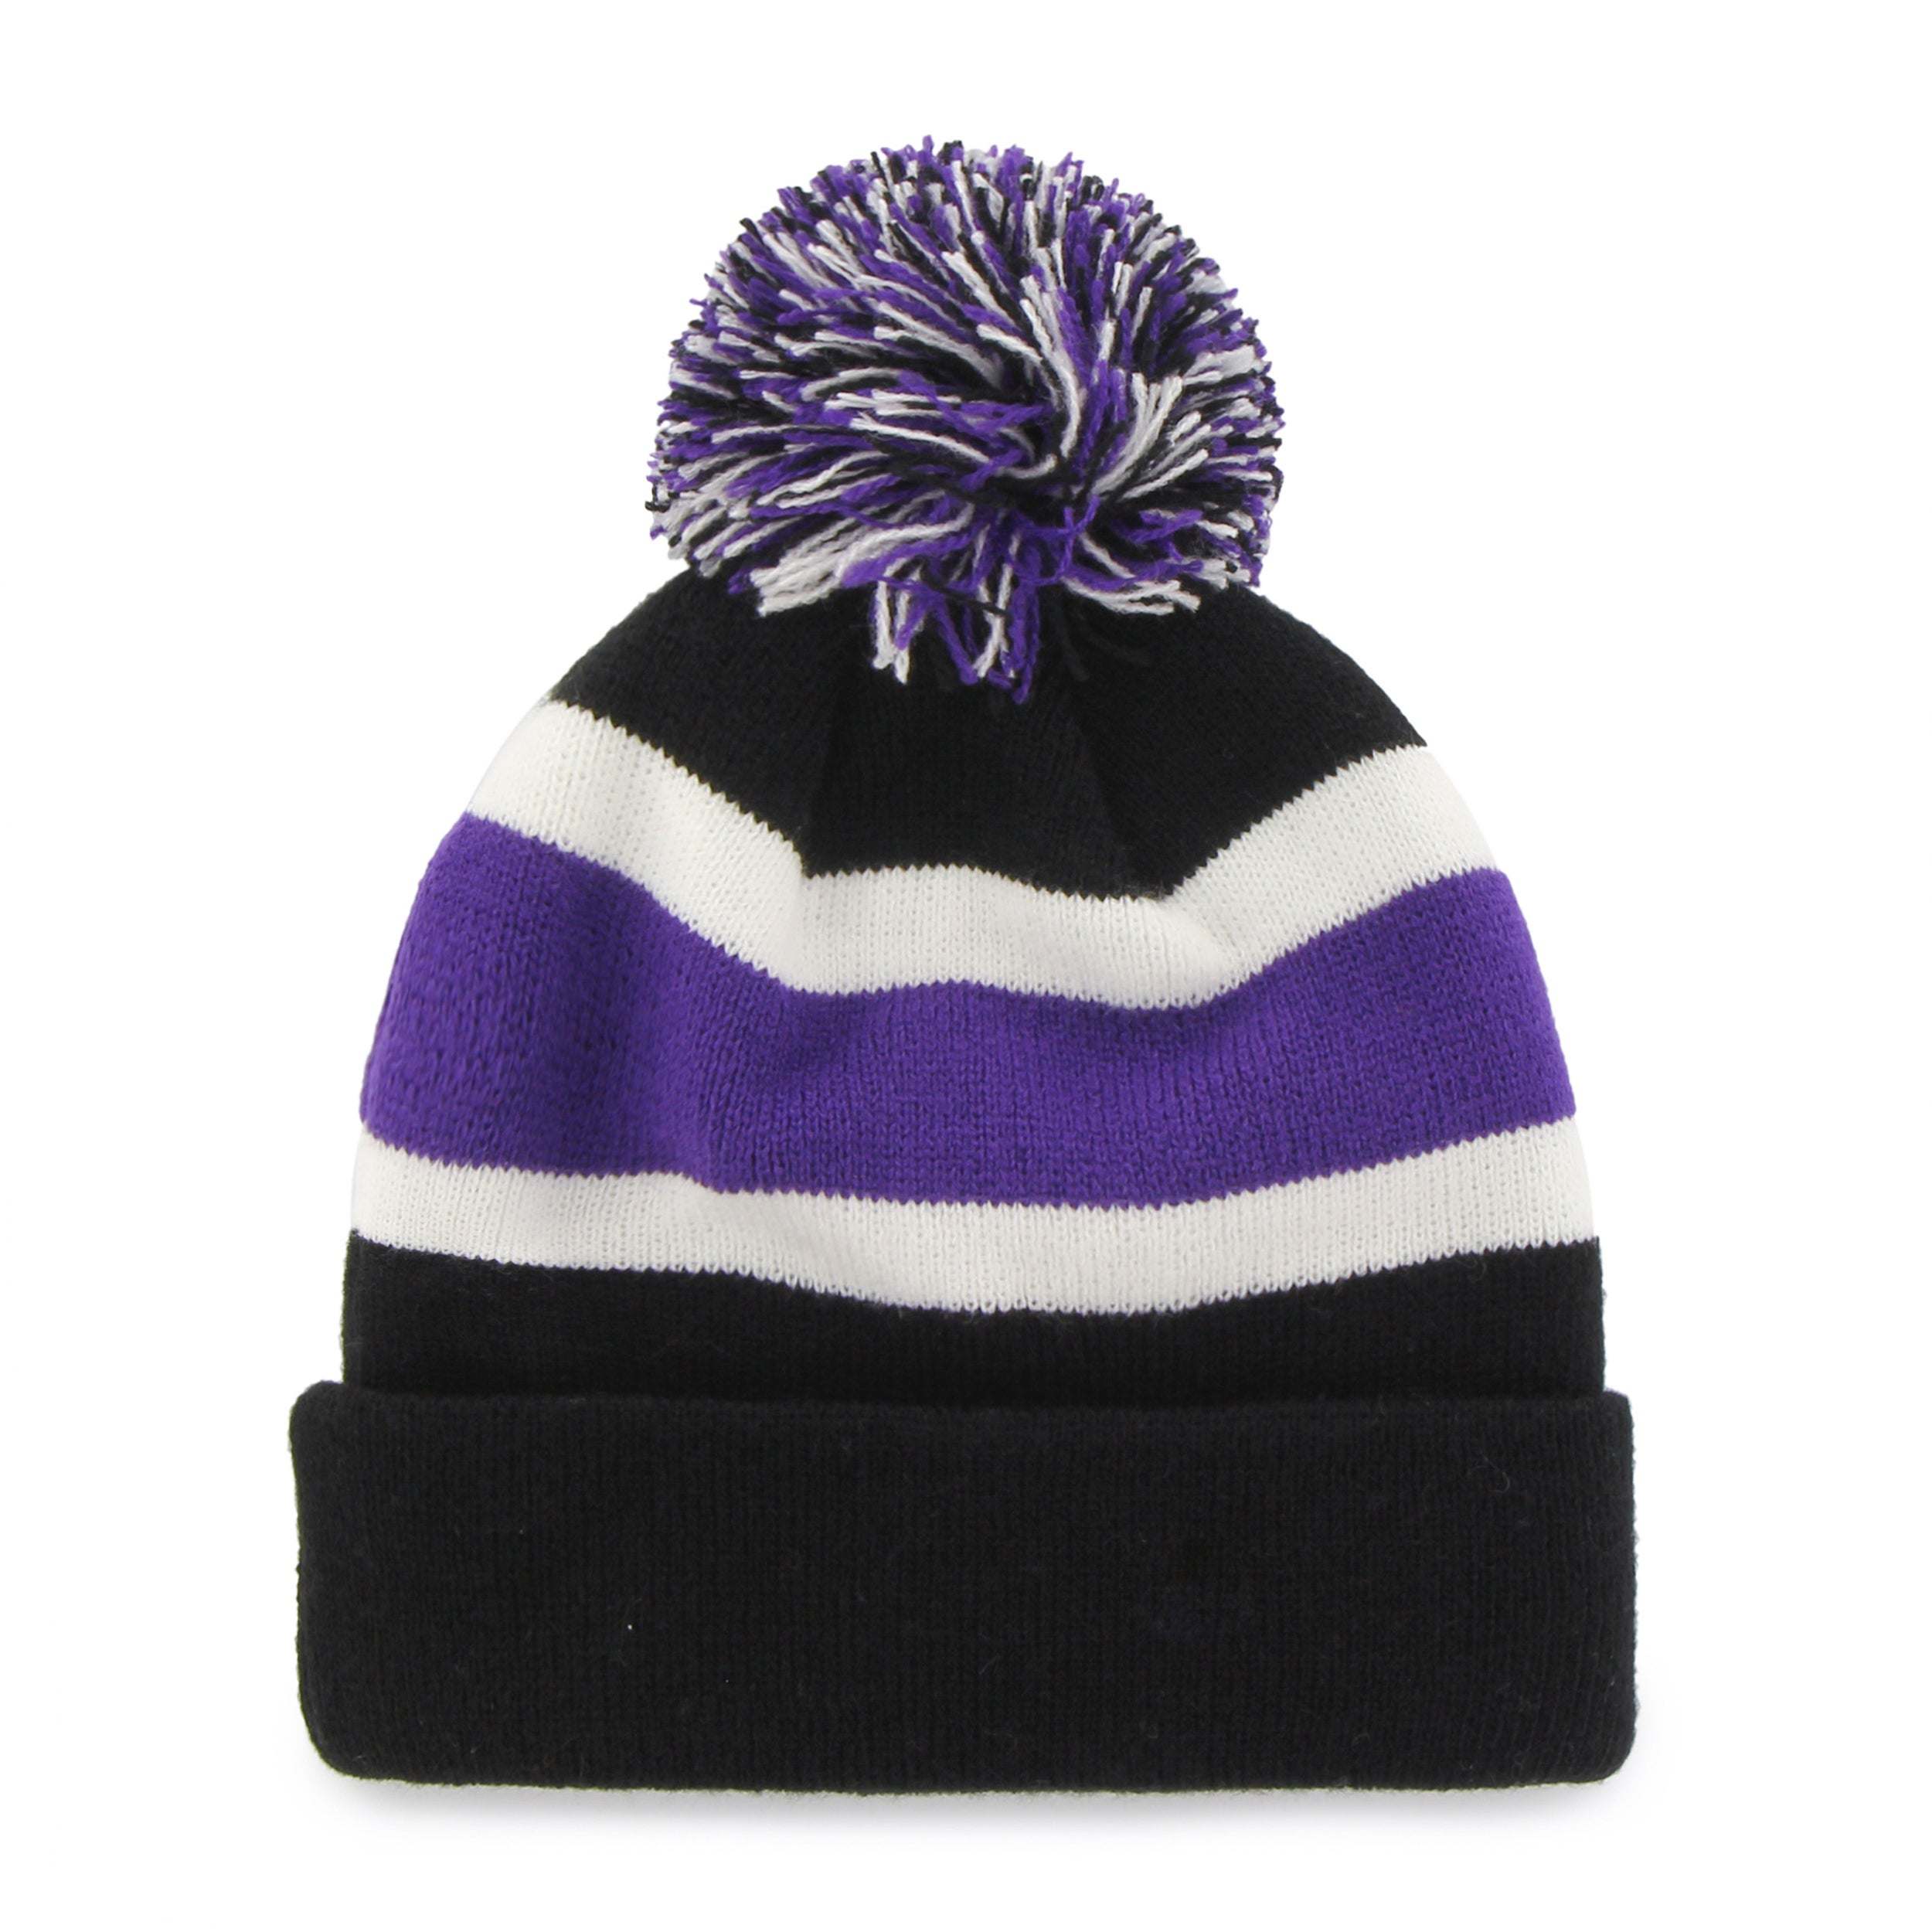 Shop Fan Favorites Baltimore Ravens NFL Knit Beanie Hat - Baltimore Ravens  - Free Shipping On Orders Over  45 - Overstock - 12186159 8f1ec776d